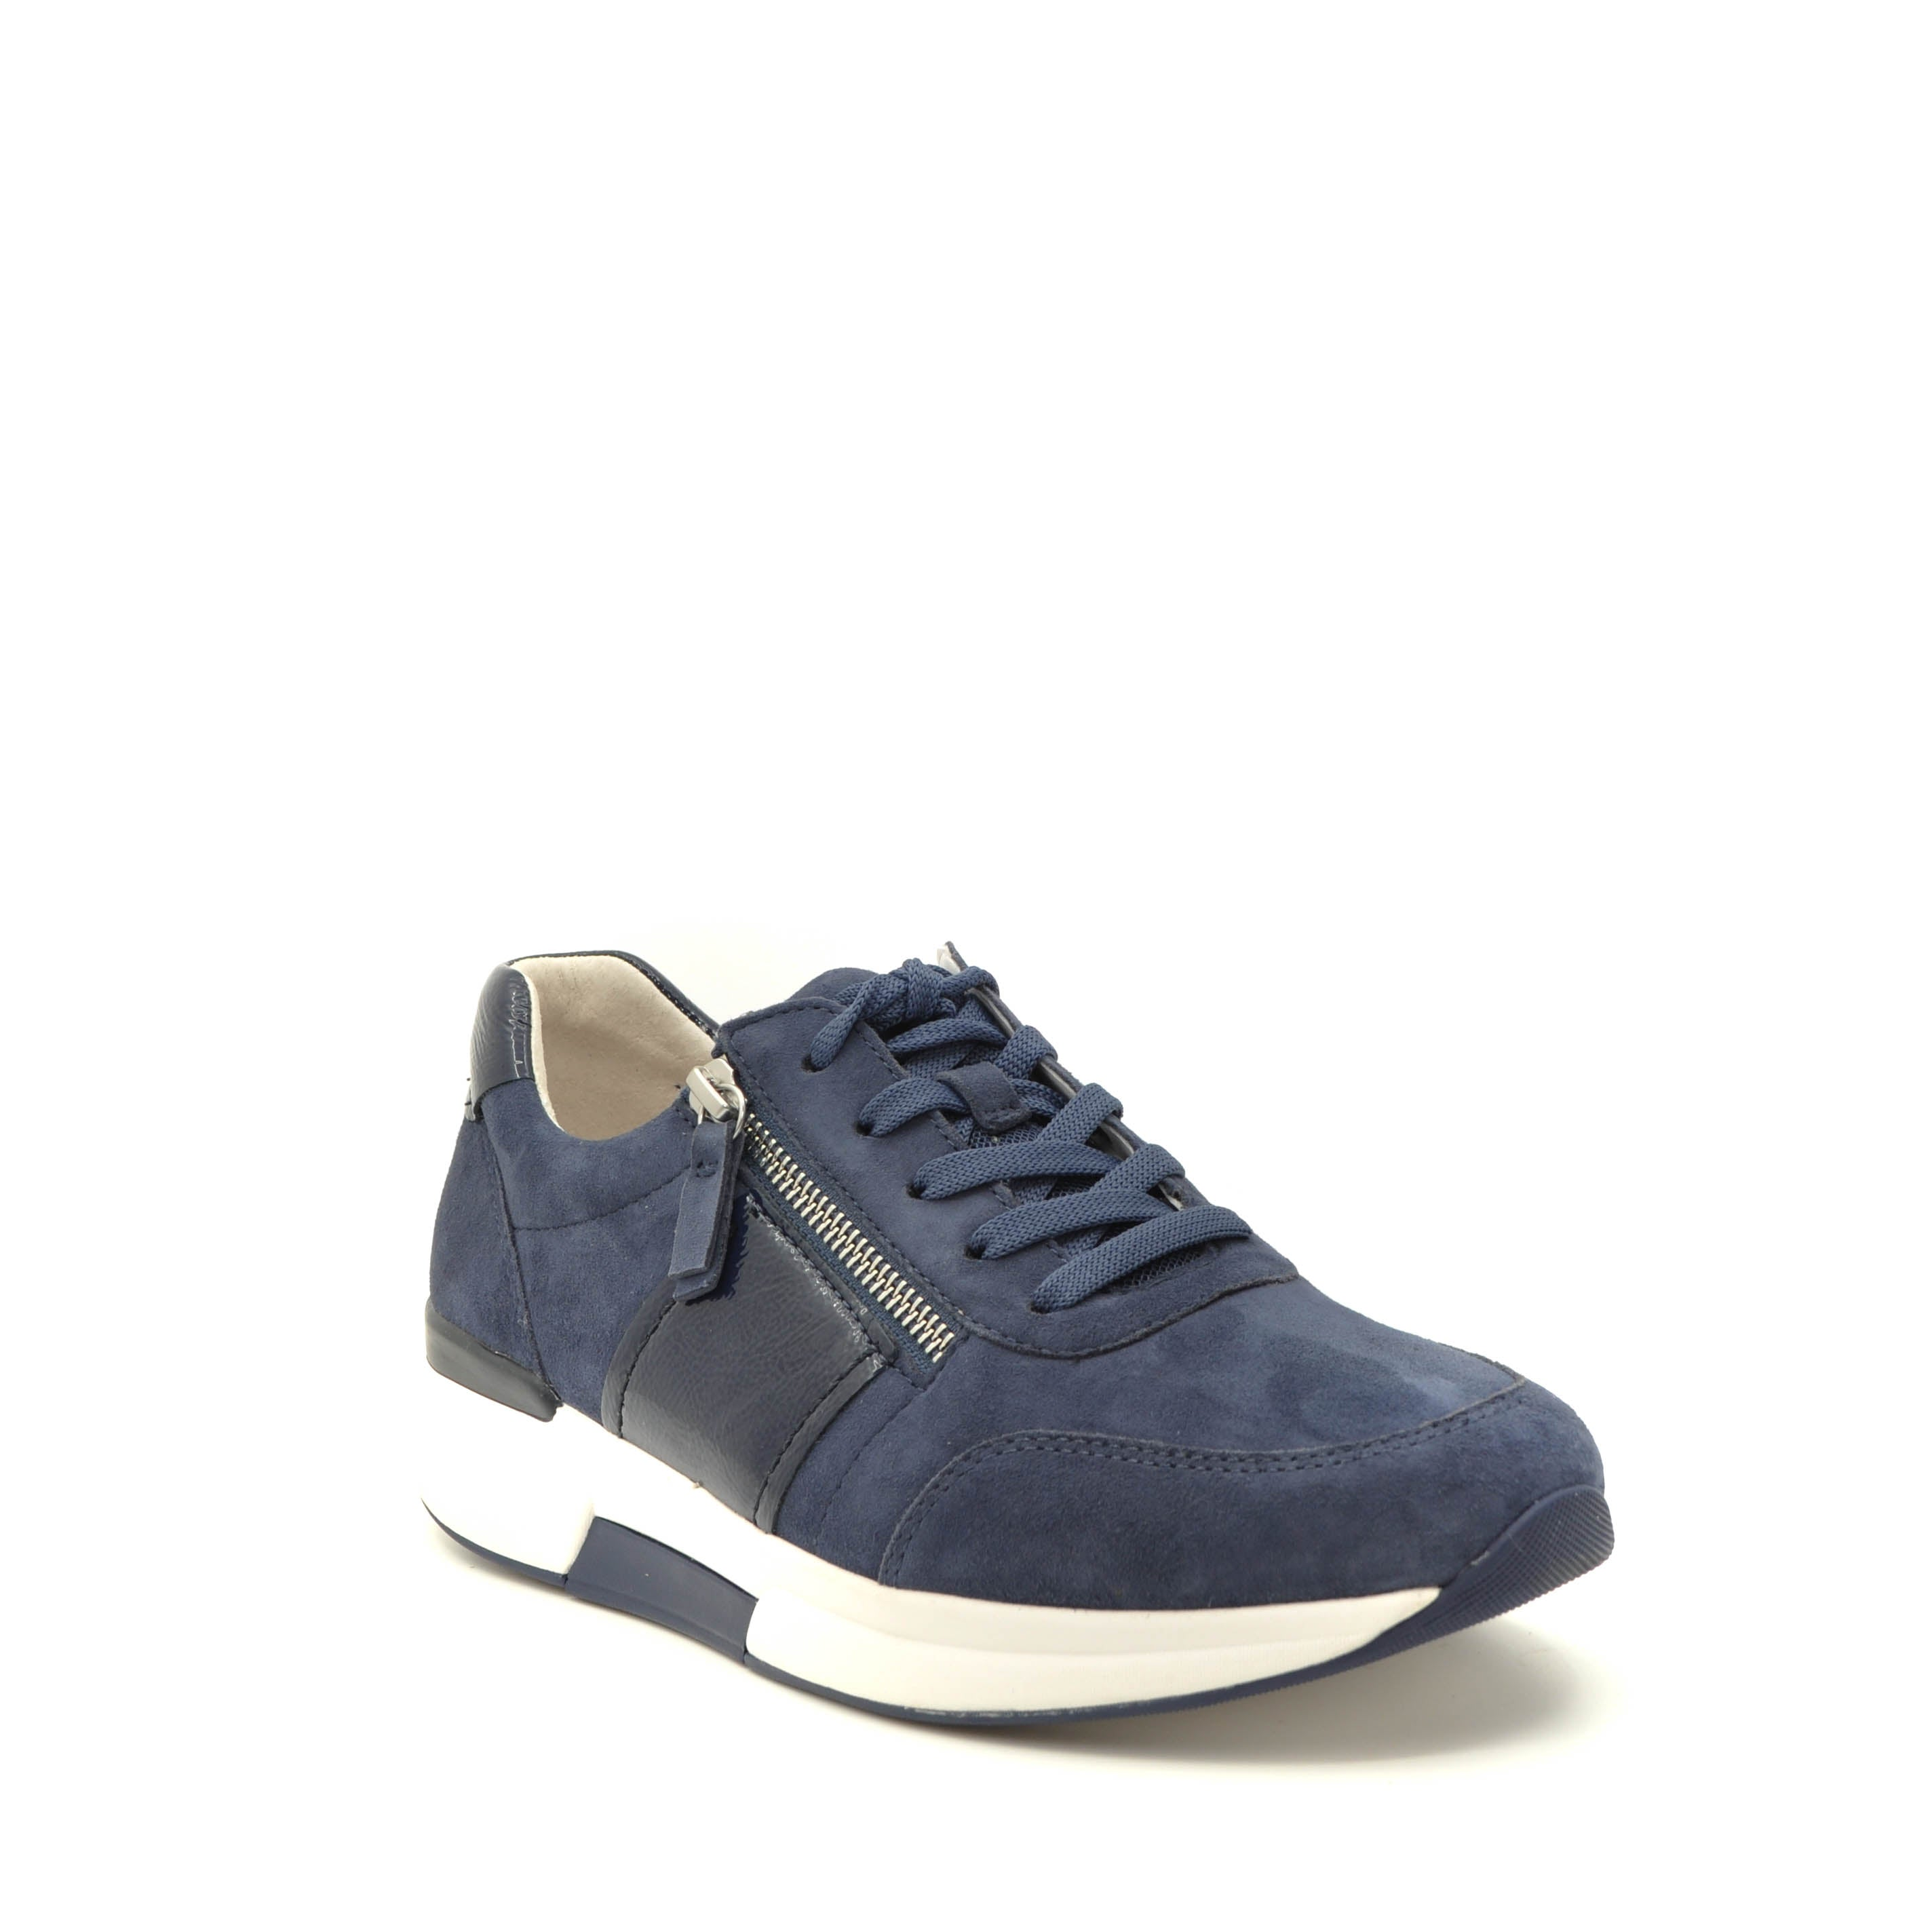 gabor shoes navy